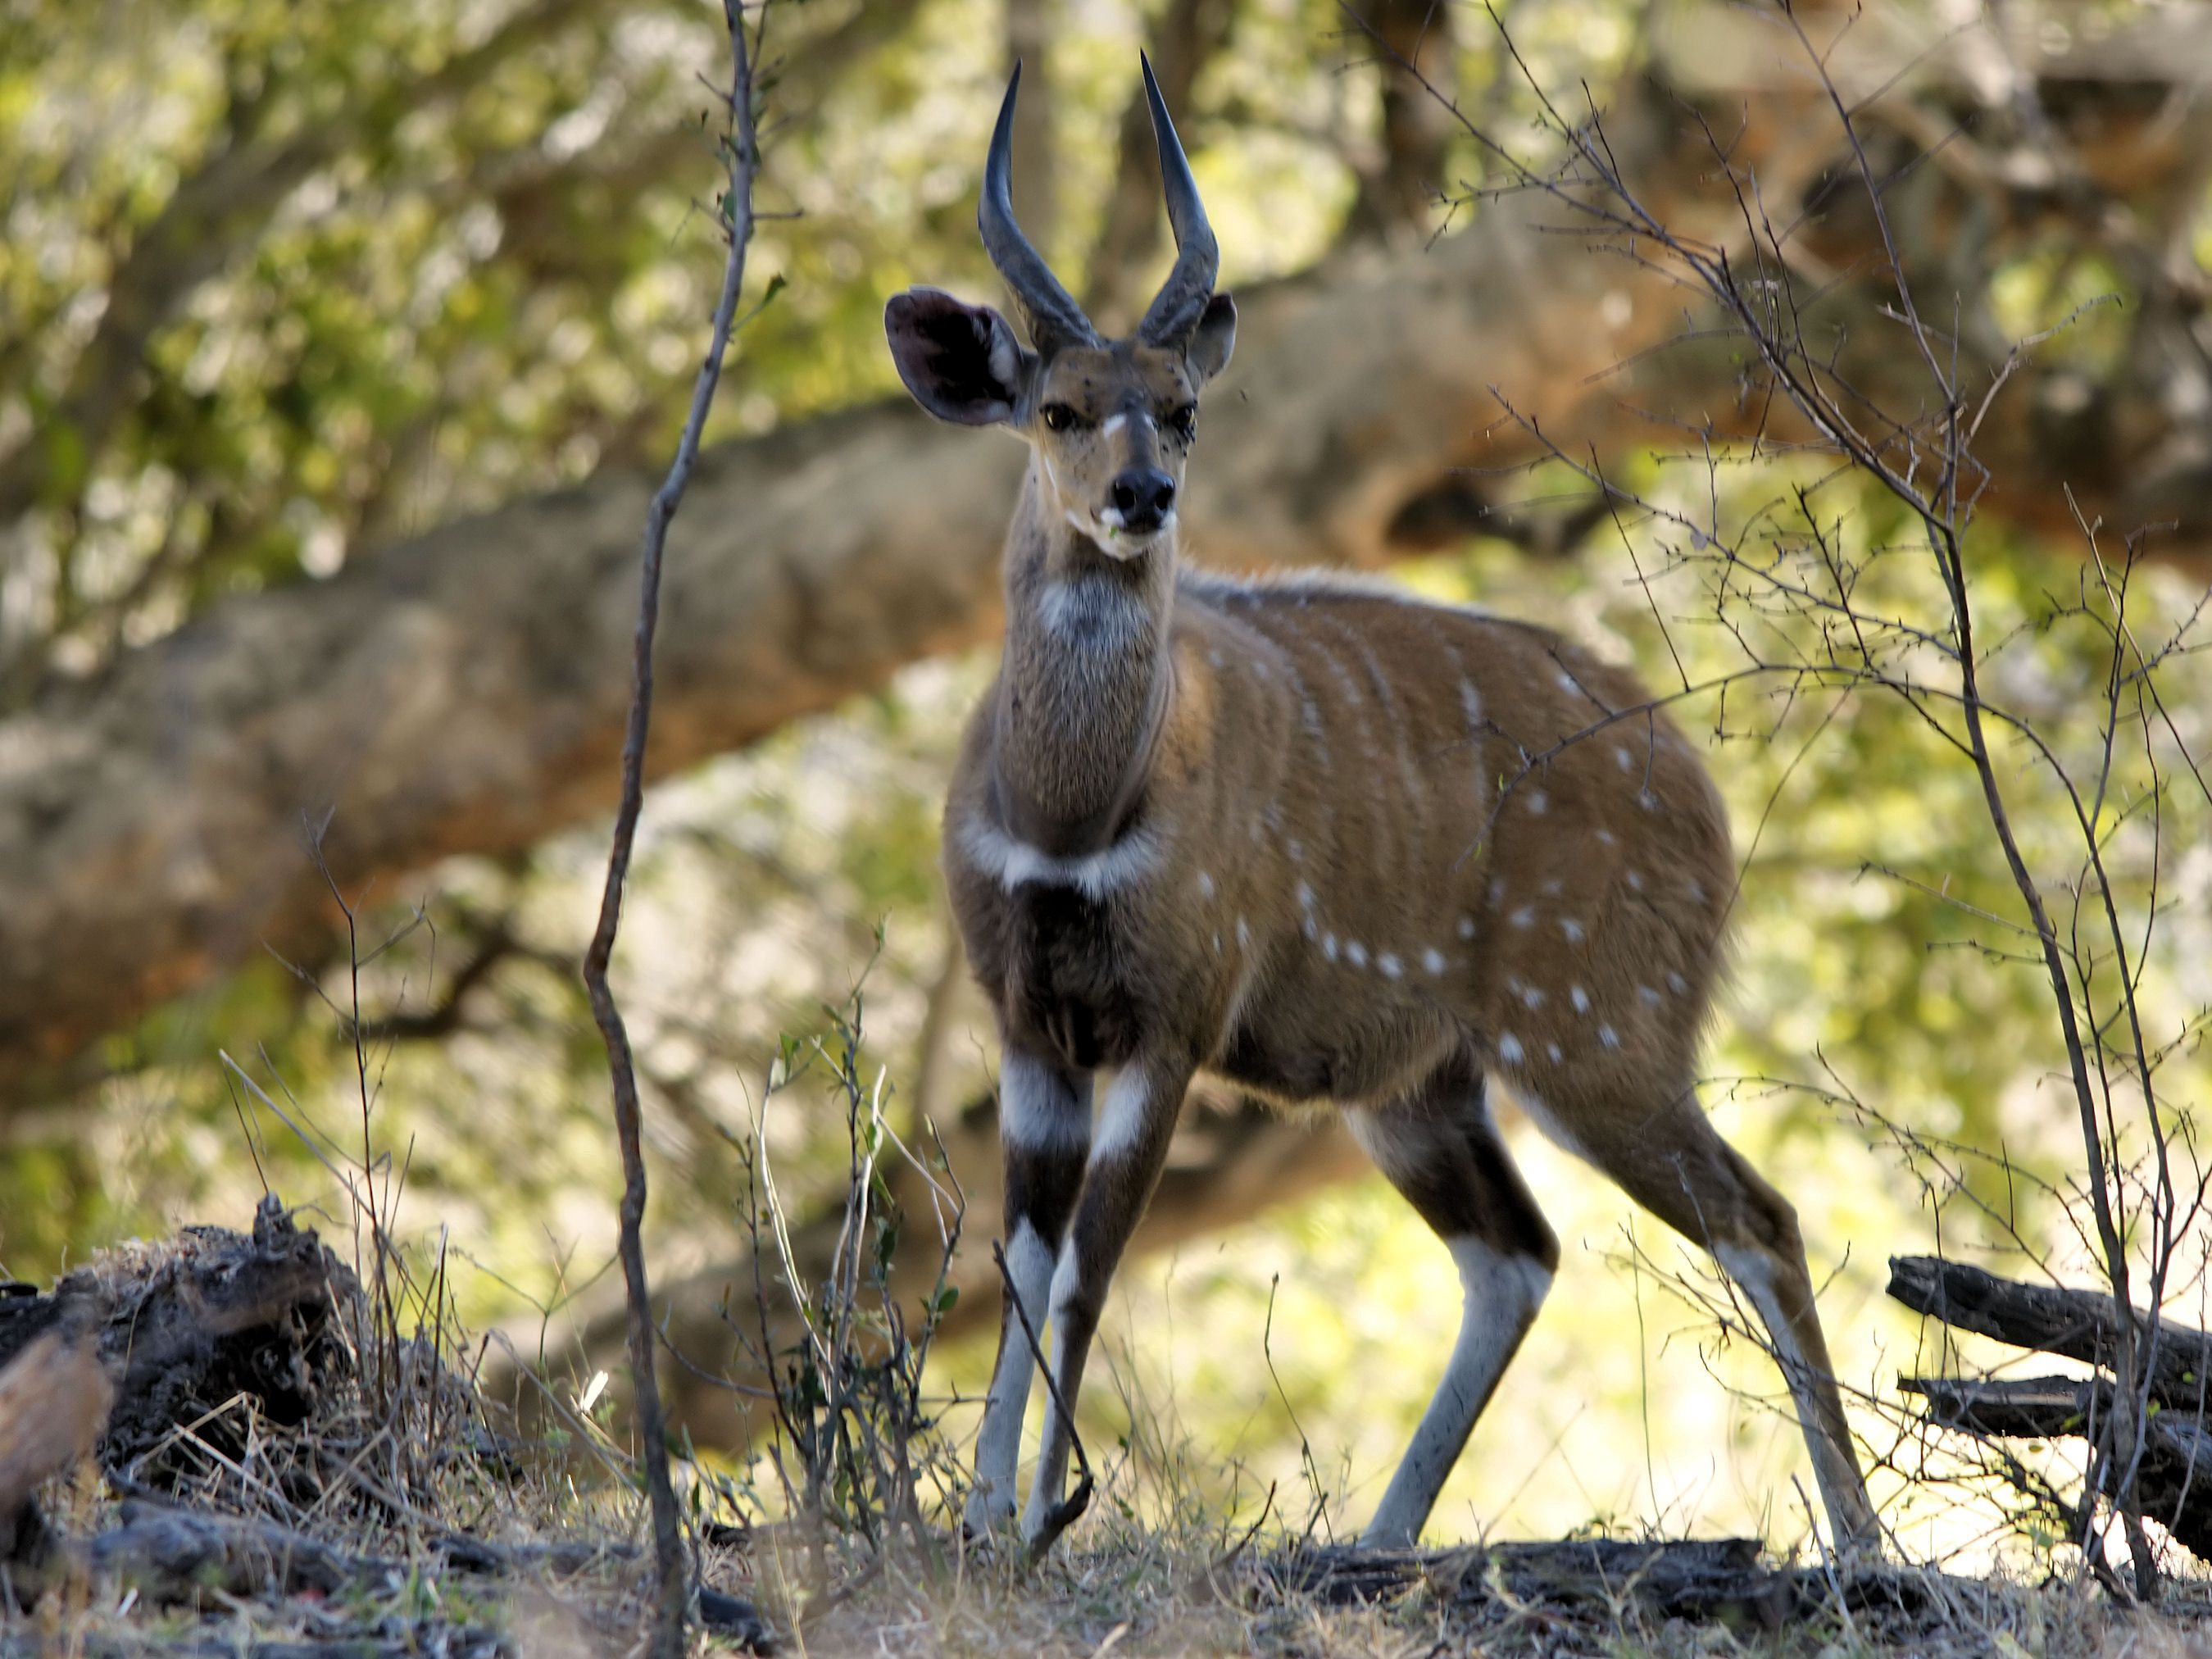 Bushbuck is a large antelope